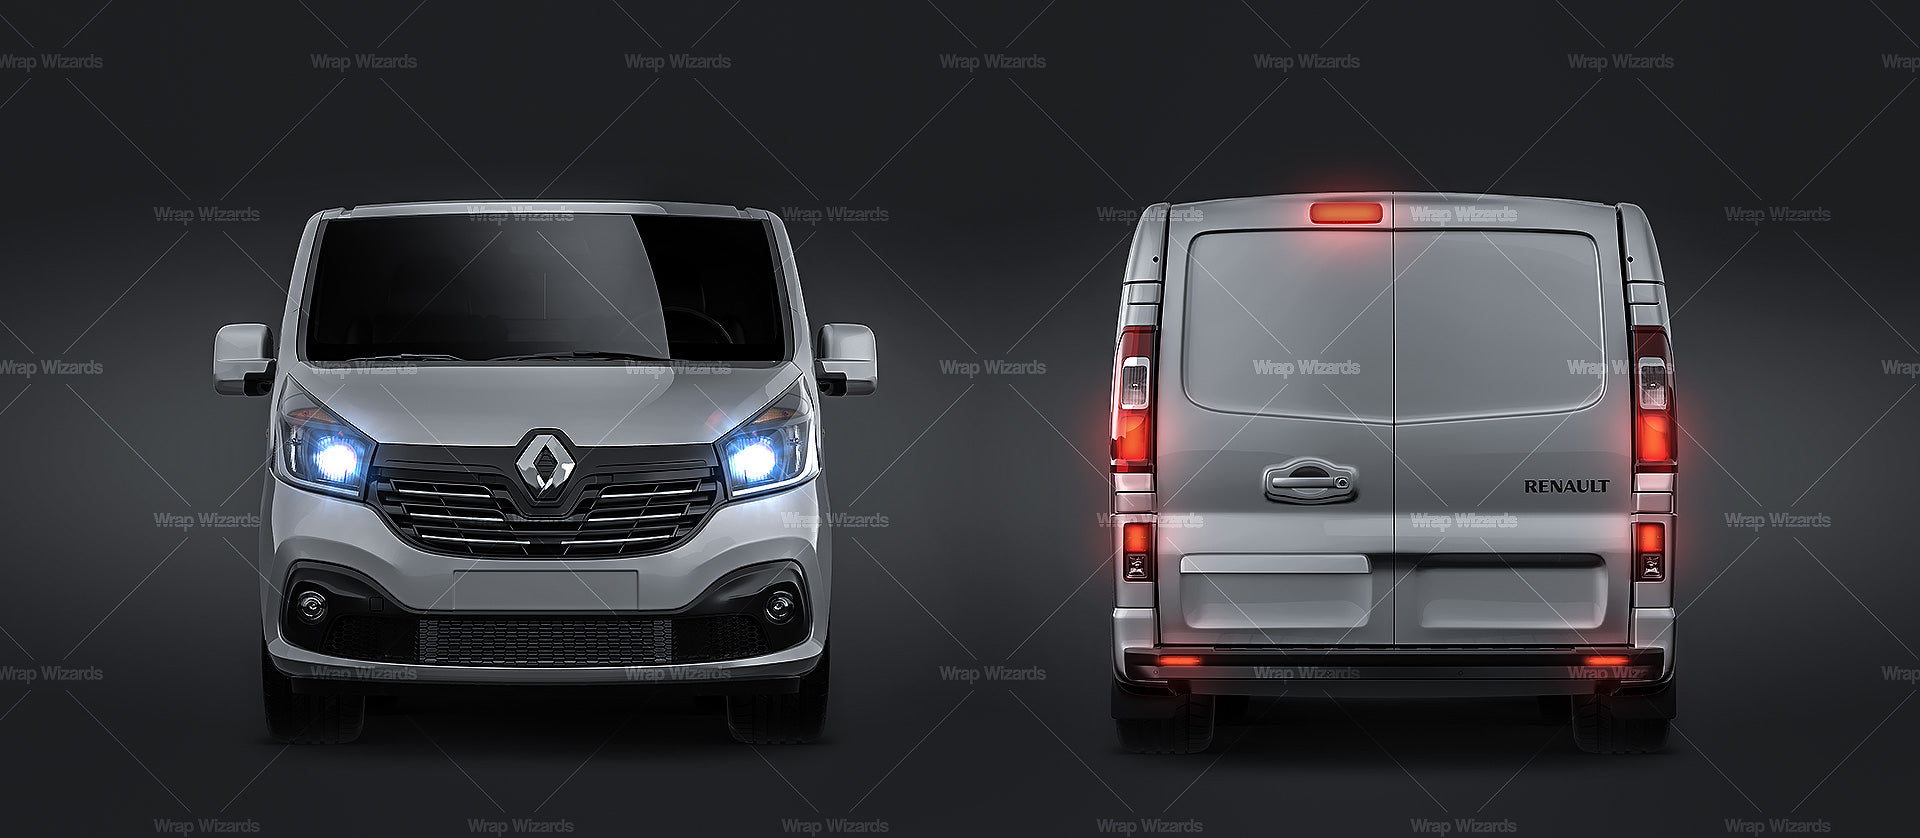 Renault Trafic Cargo 2015-2018 glossy finish - all sides Car Mockup Template.psd